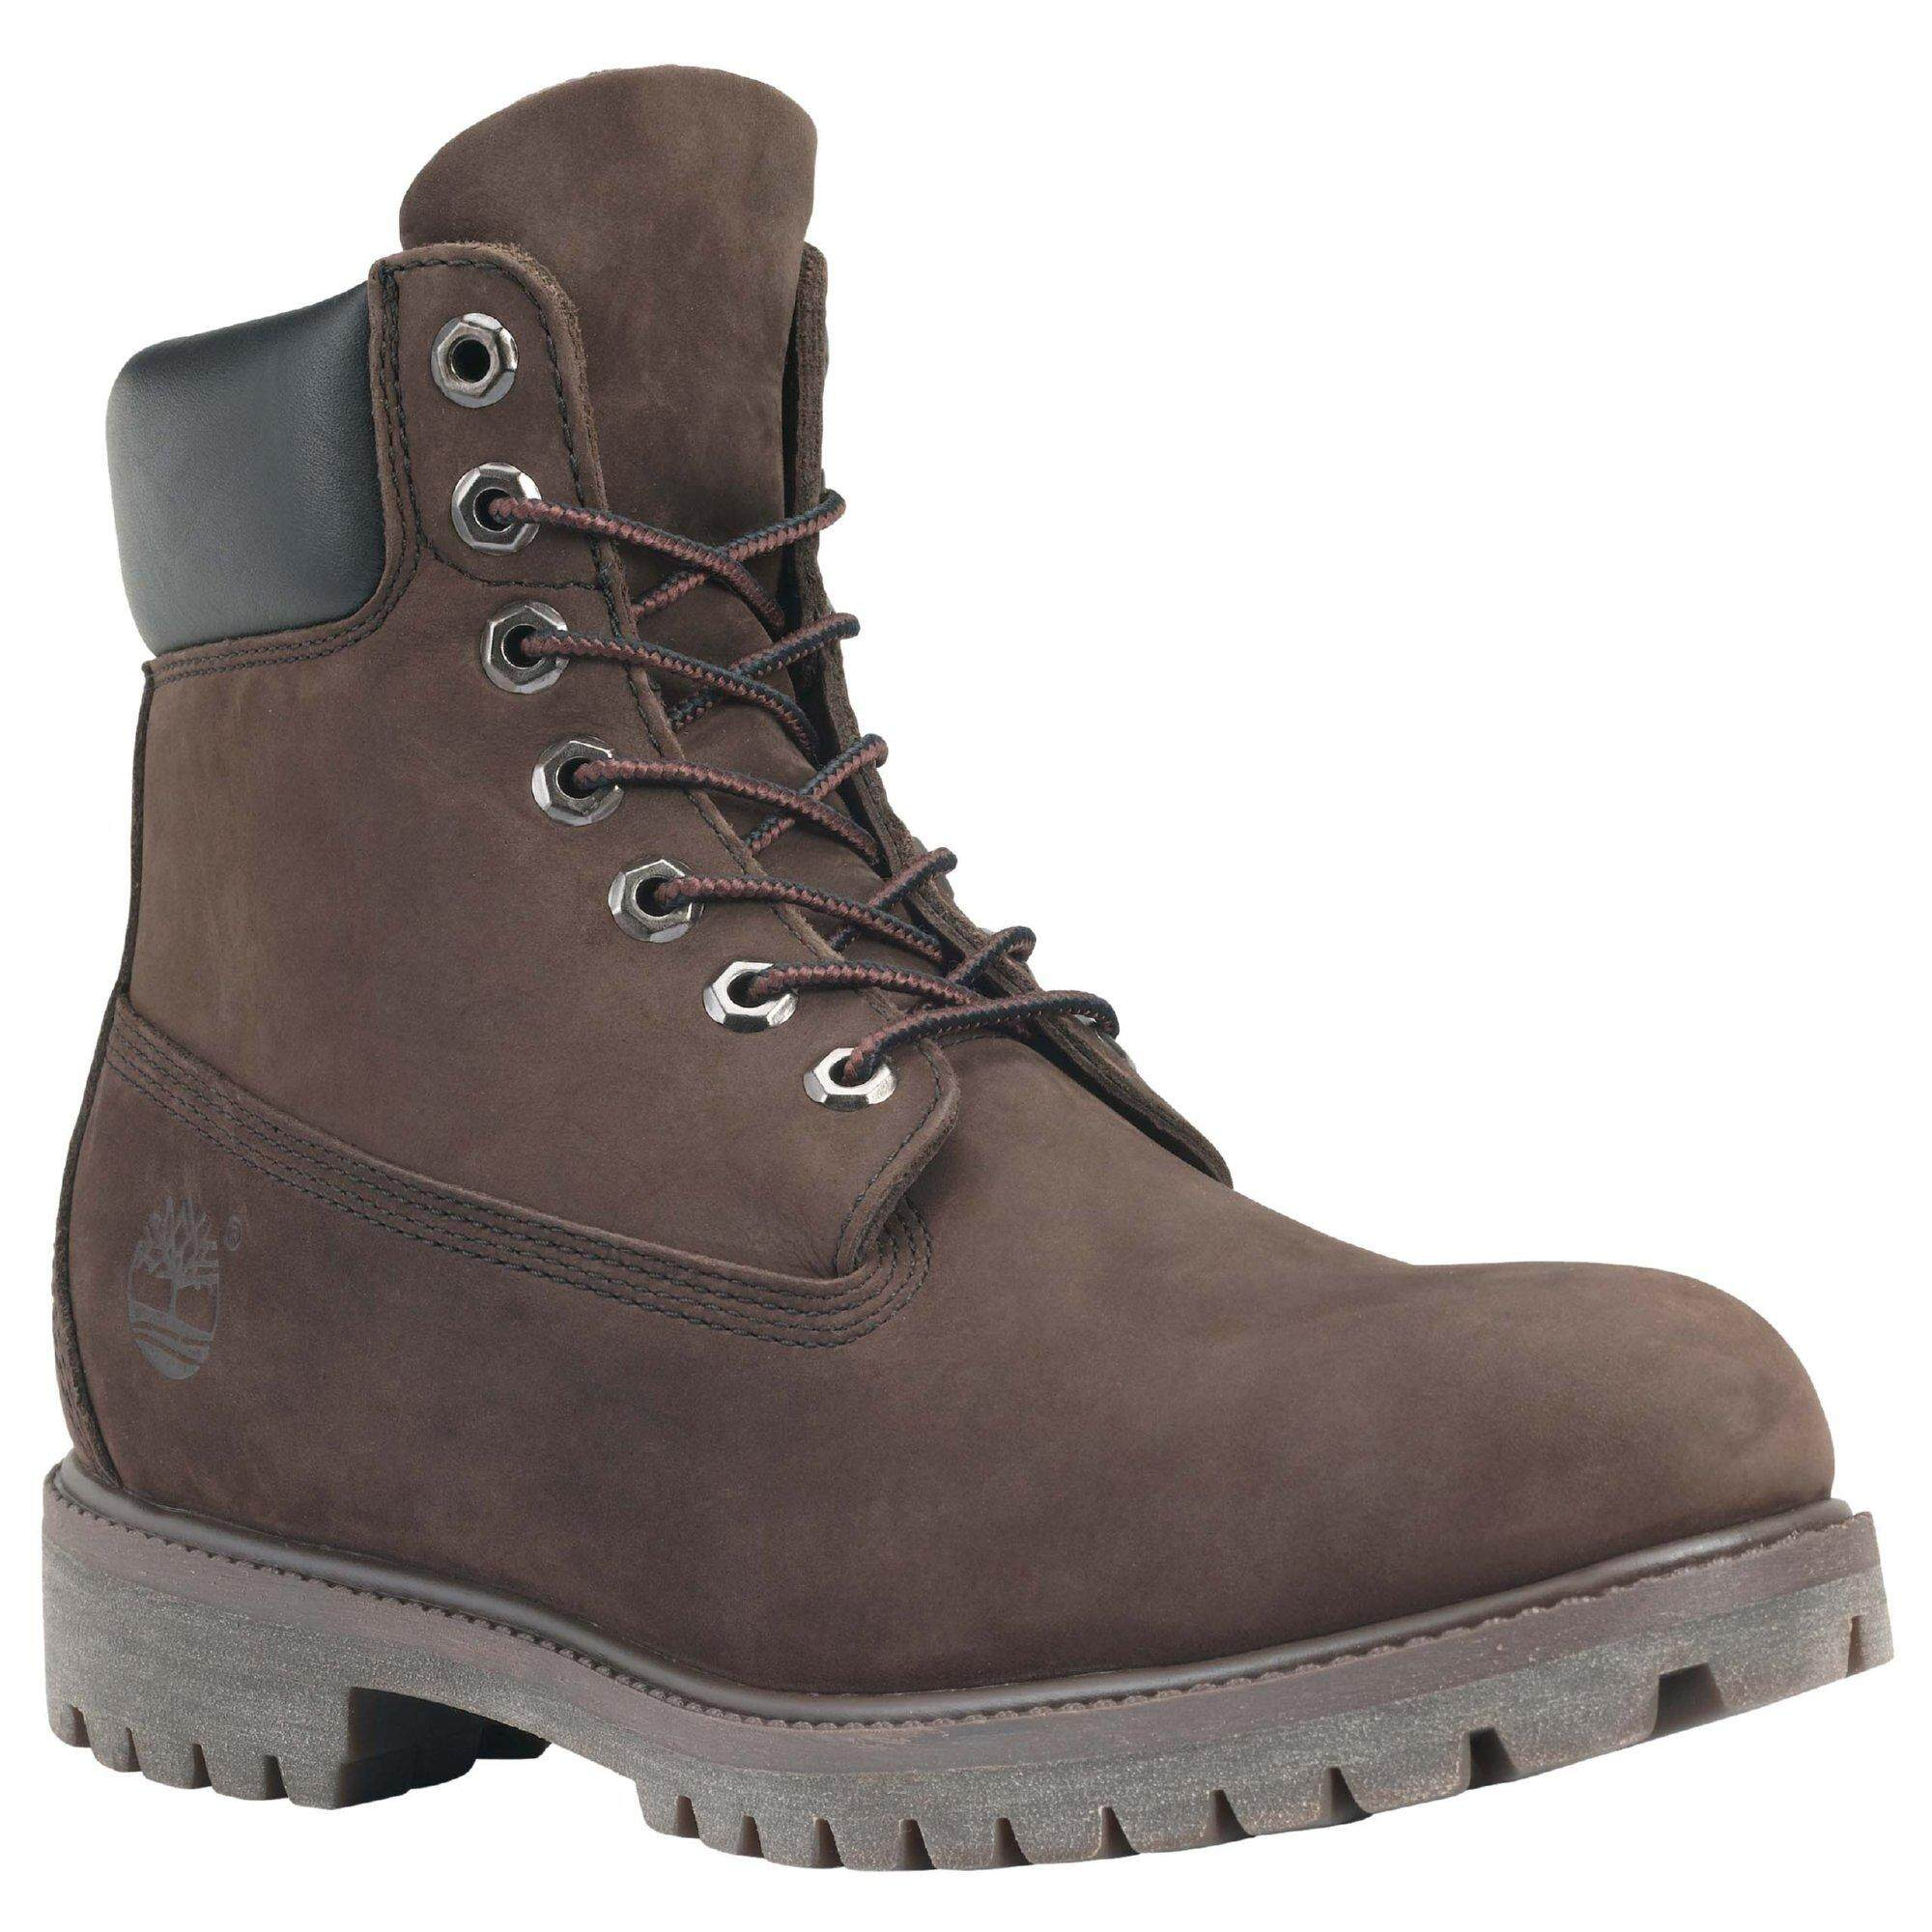 0ed92714fe1 Buy Timberland Men's Ankle Boots at Best Price In Malaysia   Lazada